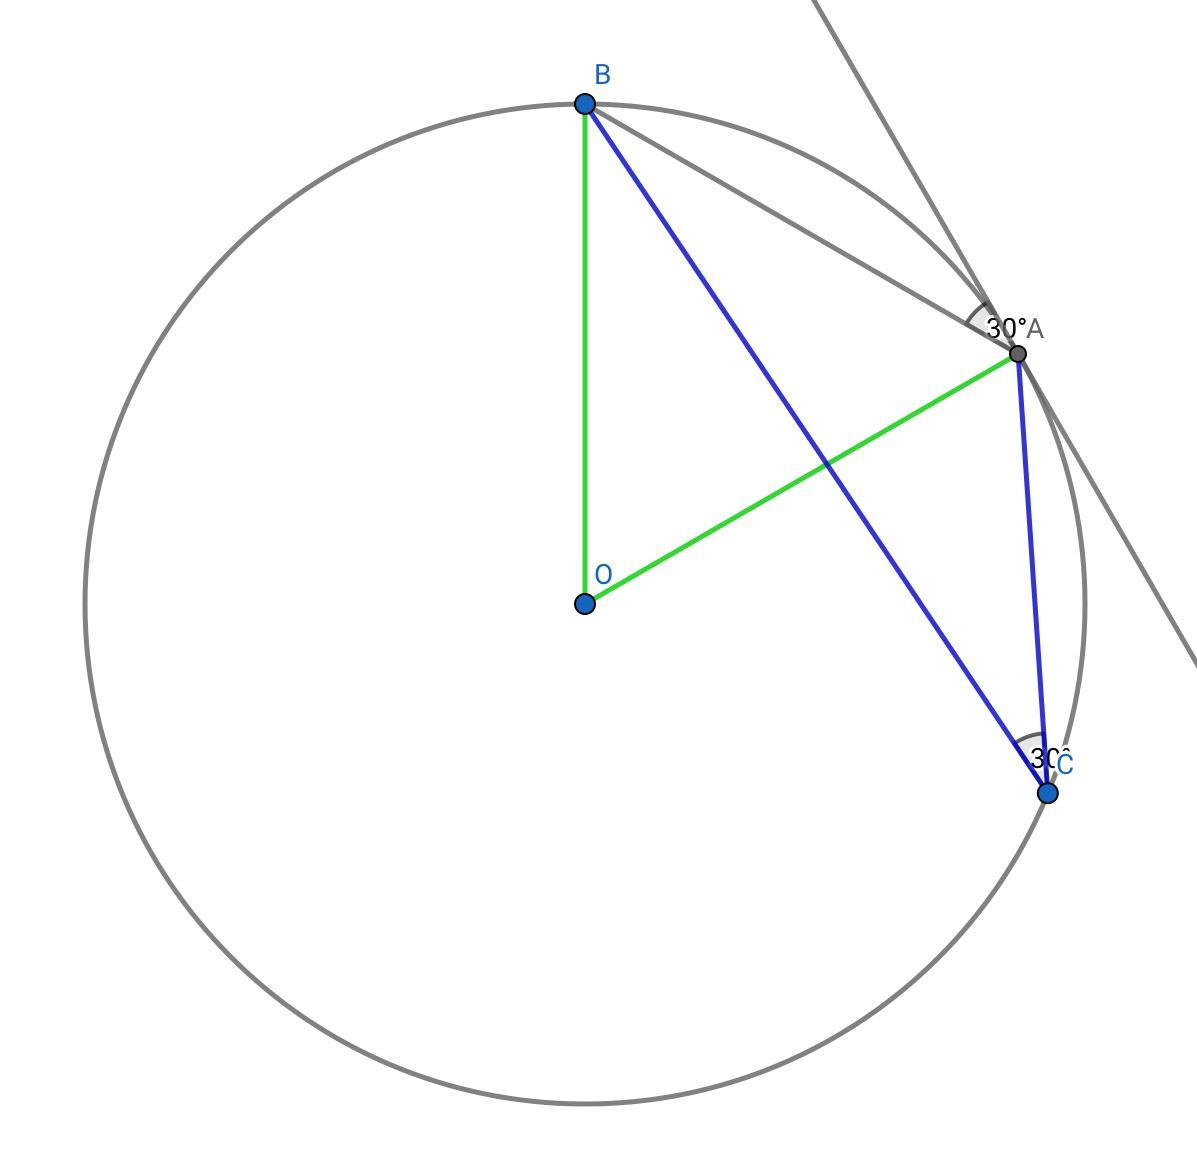 A Tangent To A Circle At Point A Is Given And Point A Is